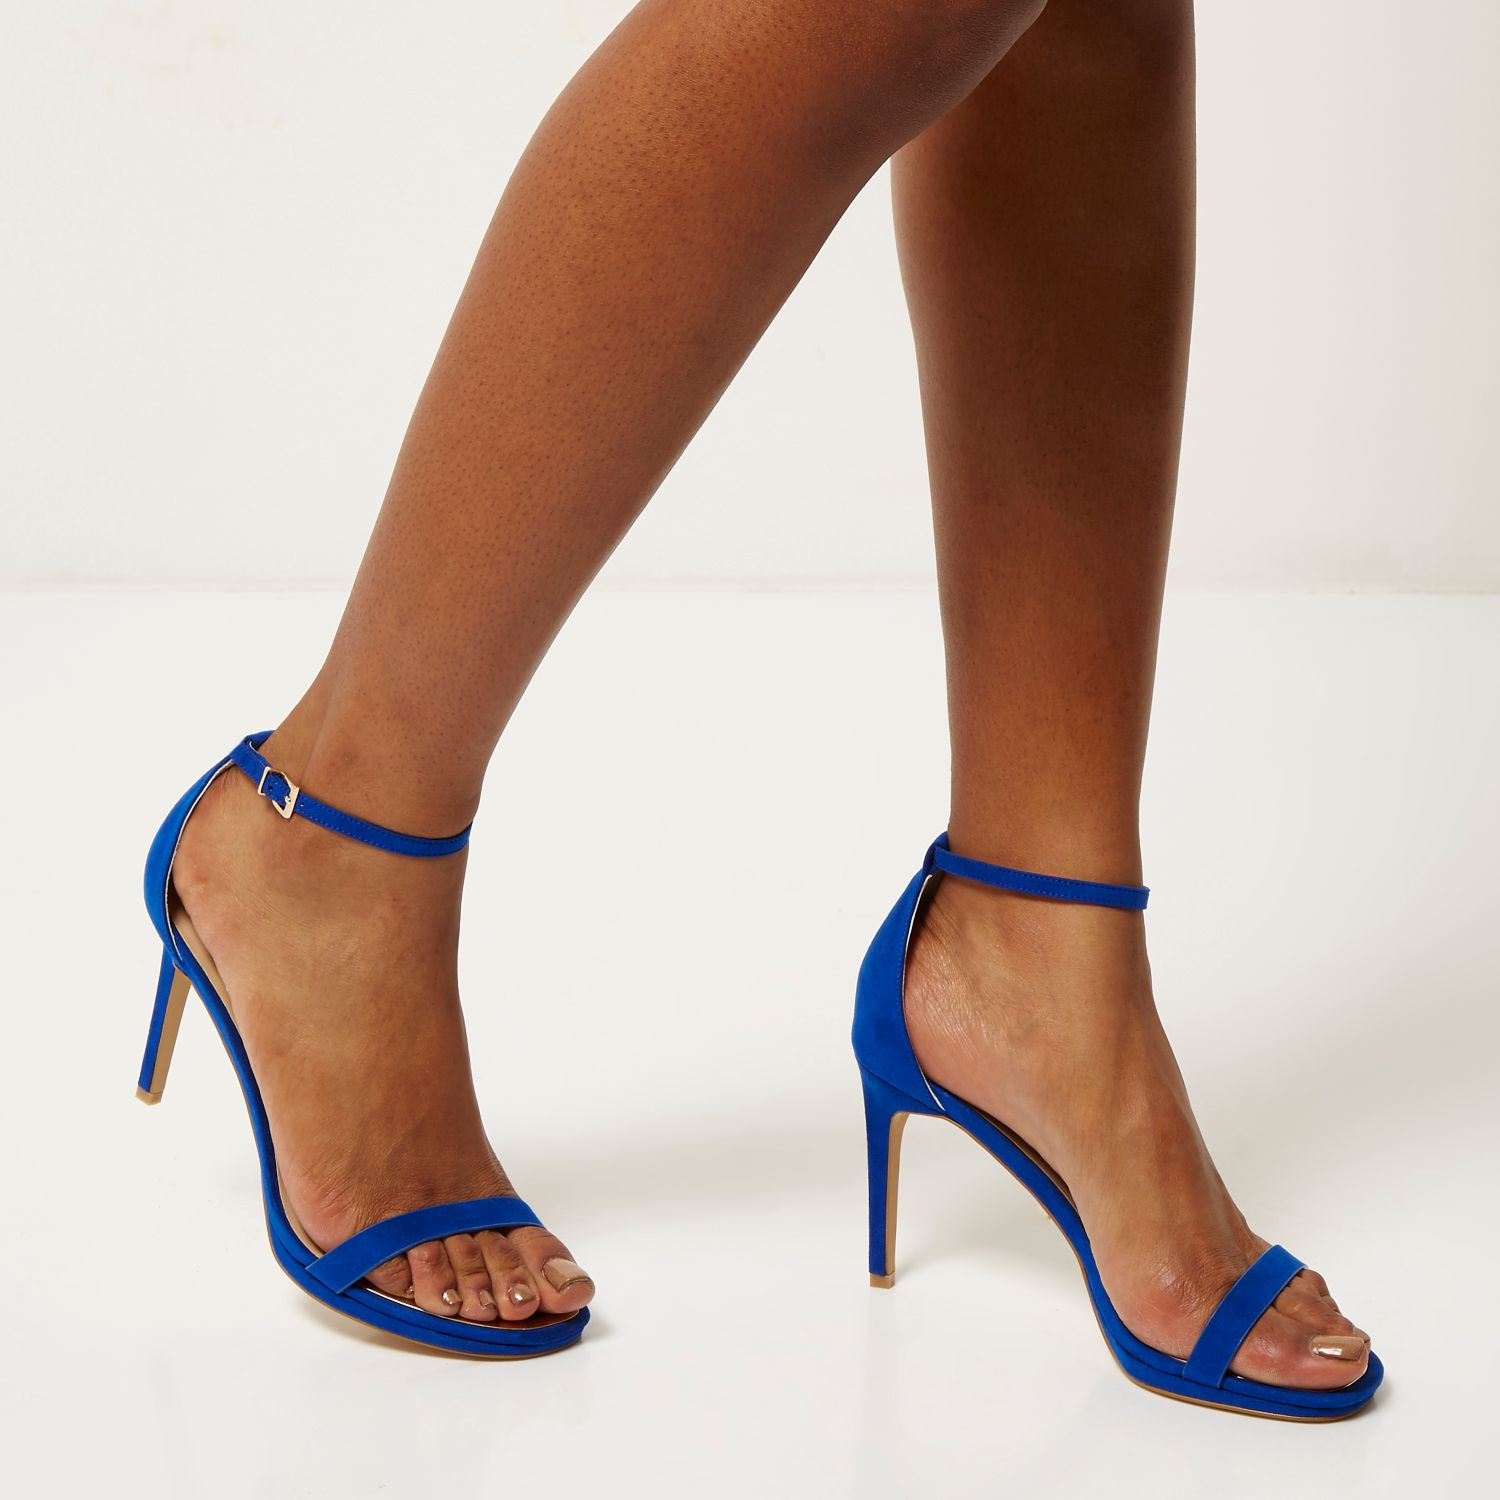 Blue Sandals Heels - Is Heel